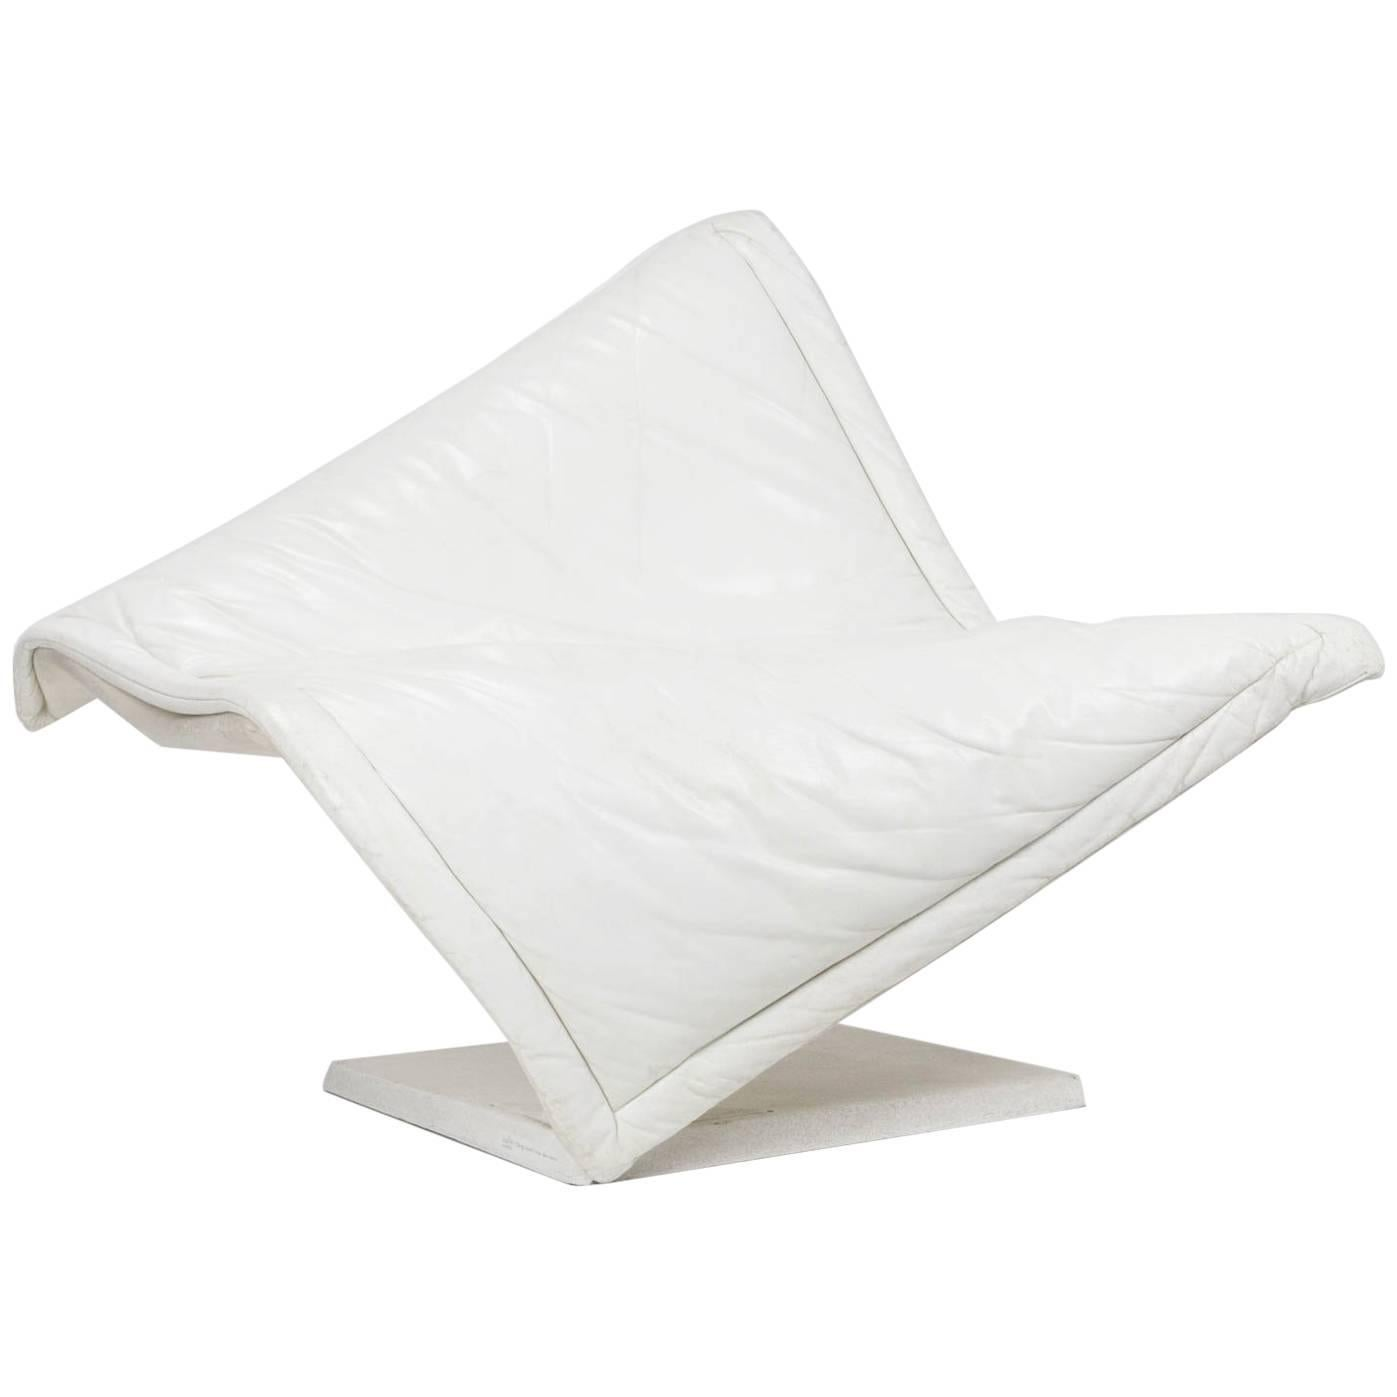 Flying Carpet Chair By Simon Desanta For Rosenthal Einrichtung For Sale